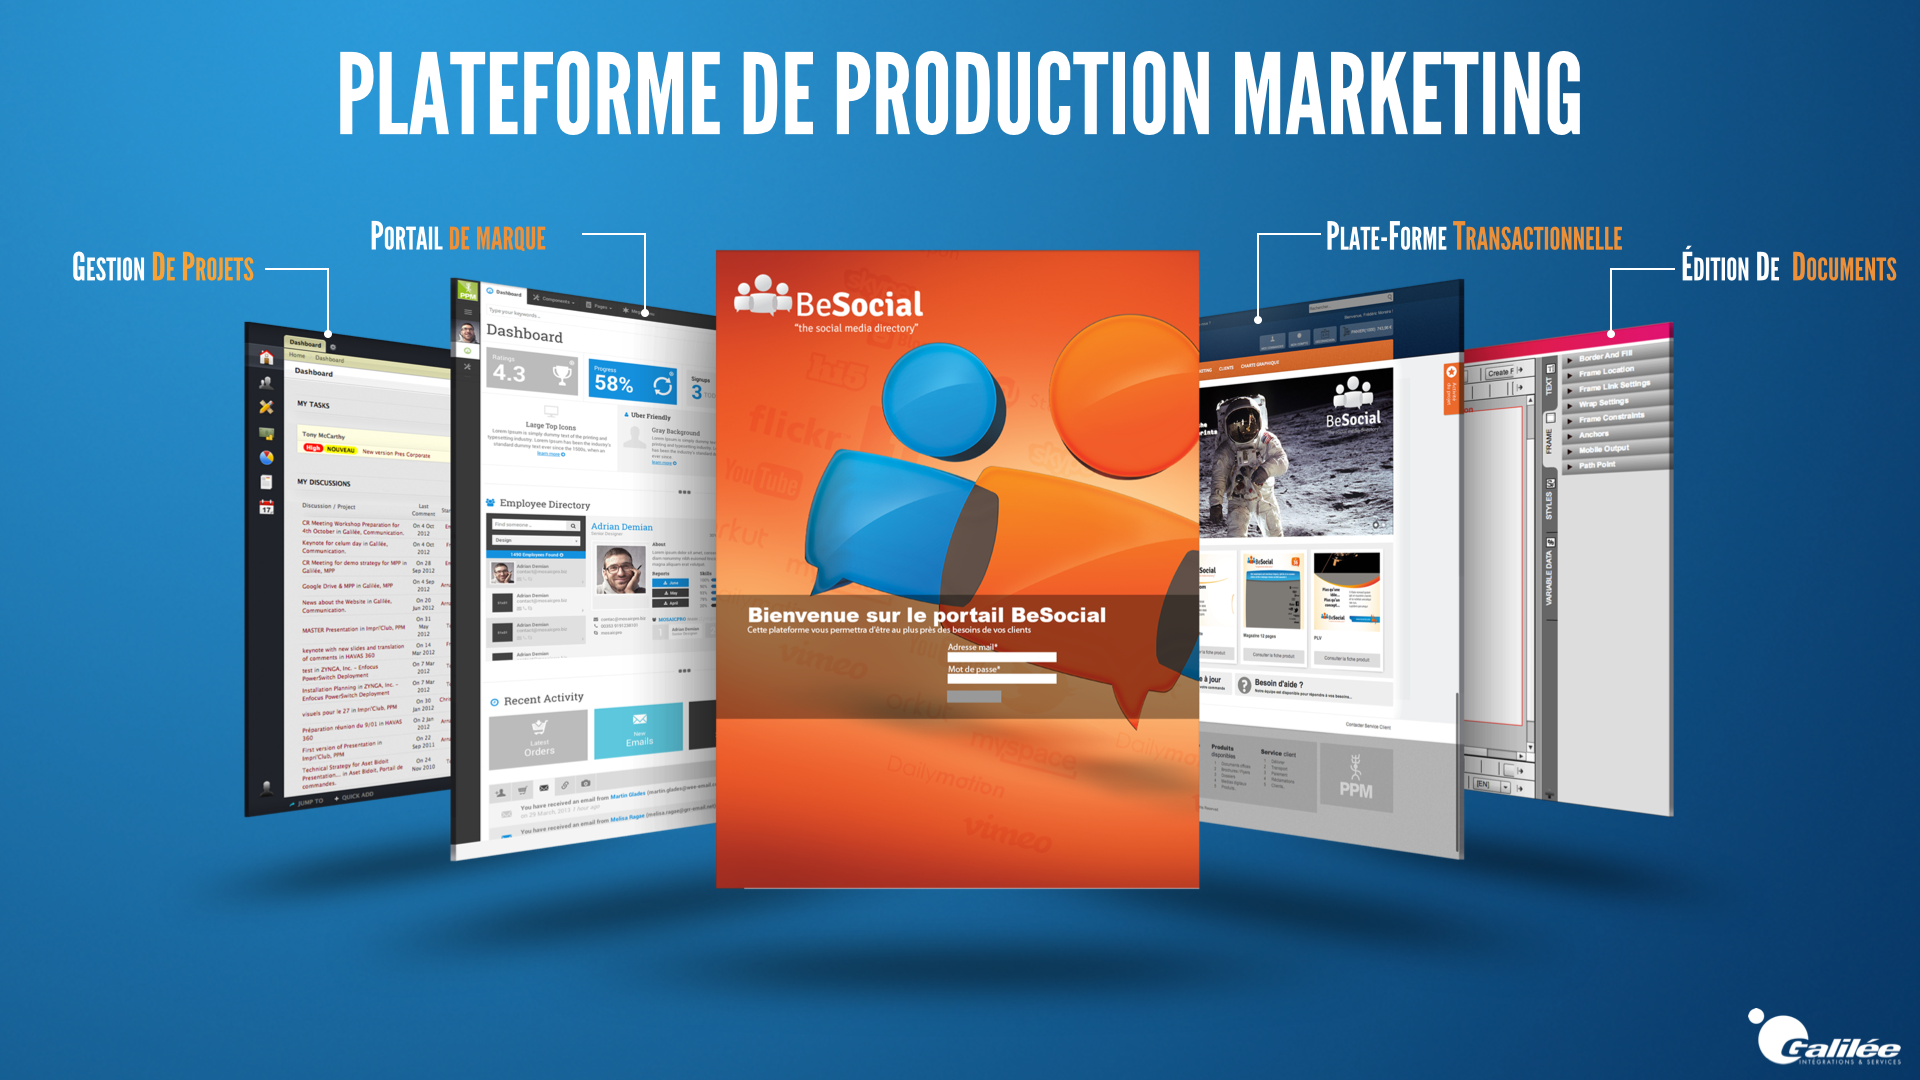 Plate-forme de Production Marketing